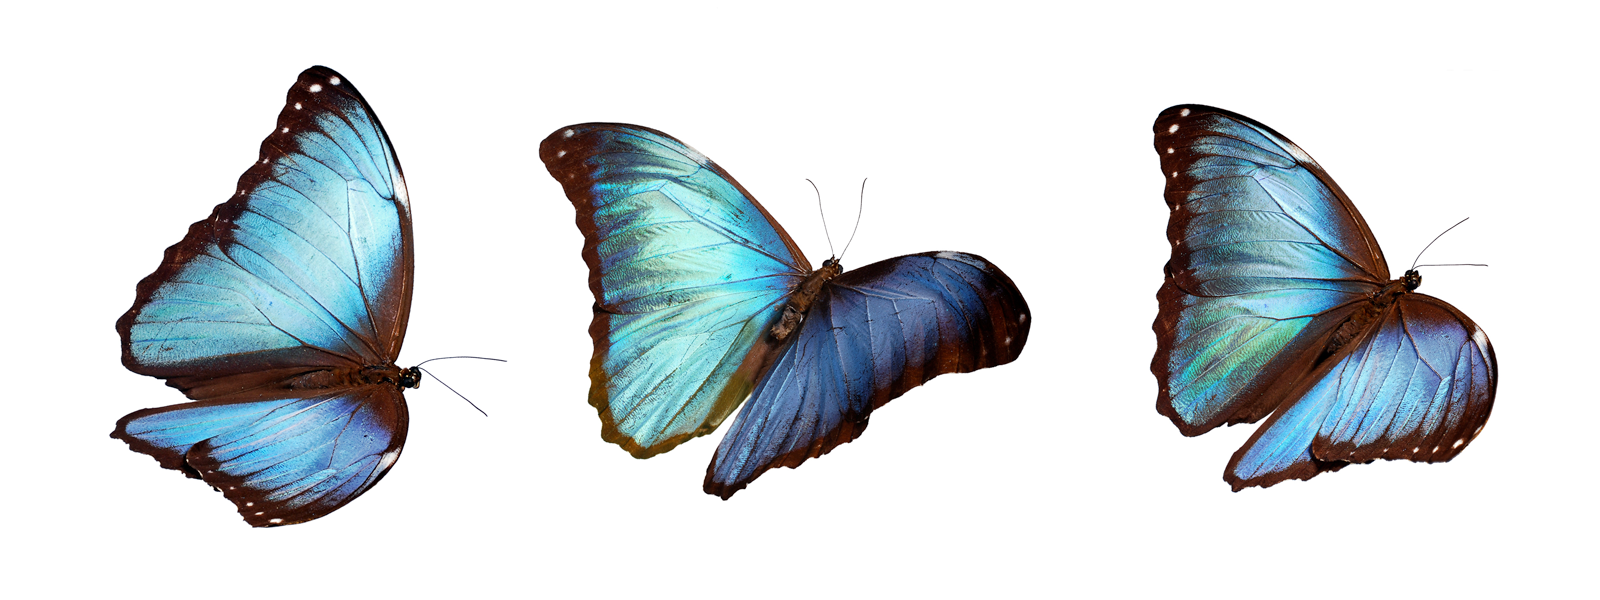 ovnp_headerimages_butterfly1